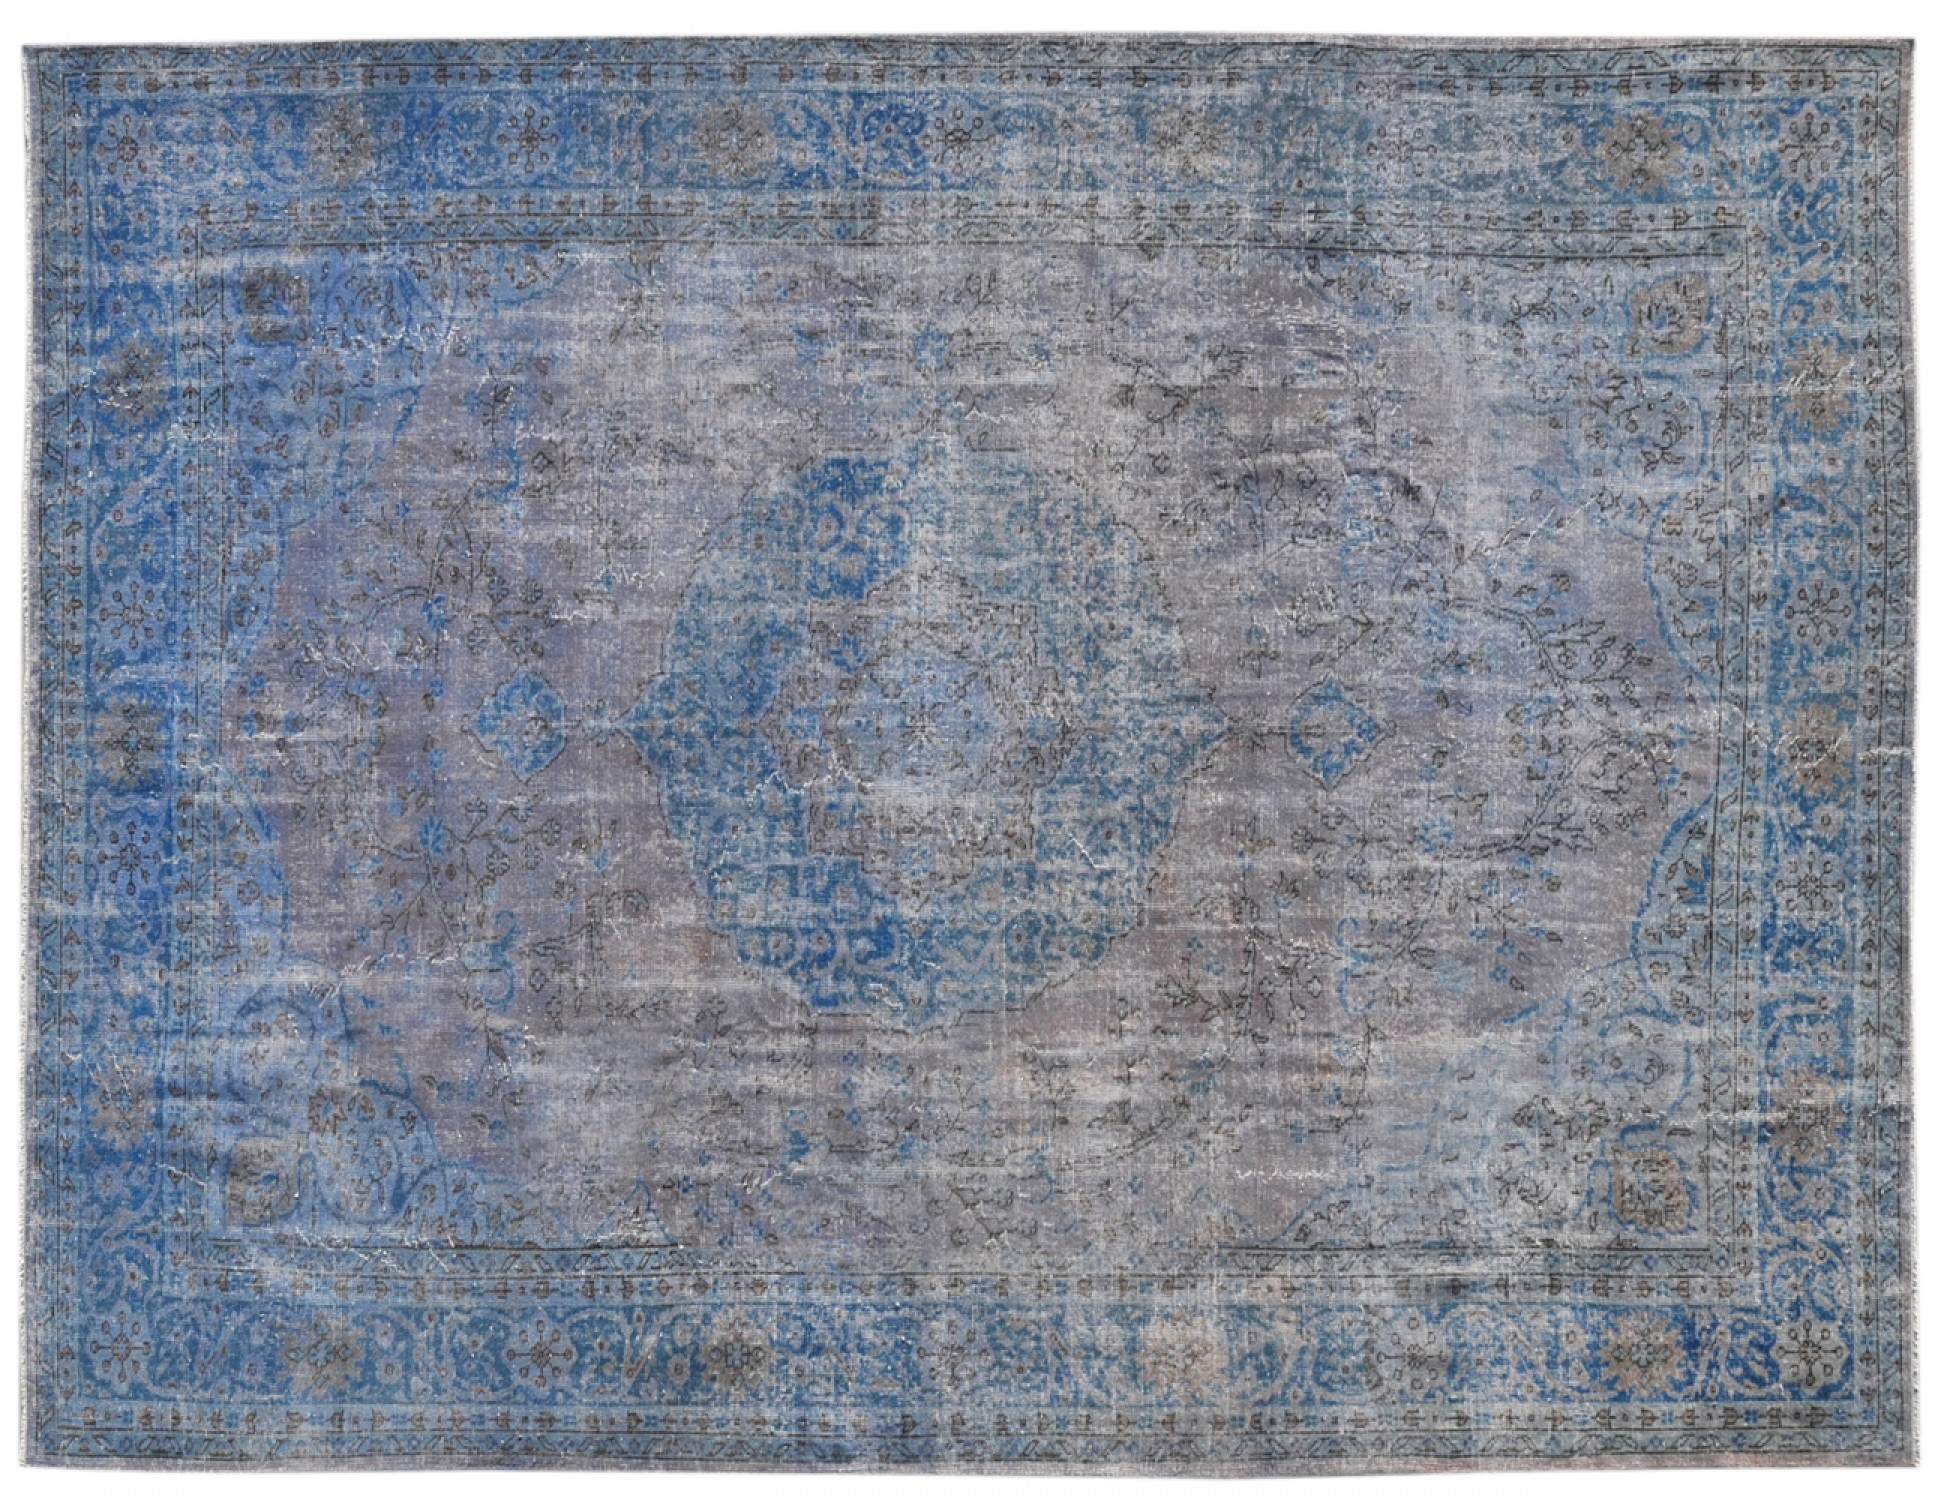 Vintage Carpet  blue <br/>356 x 268 cm